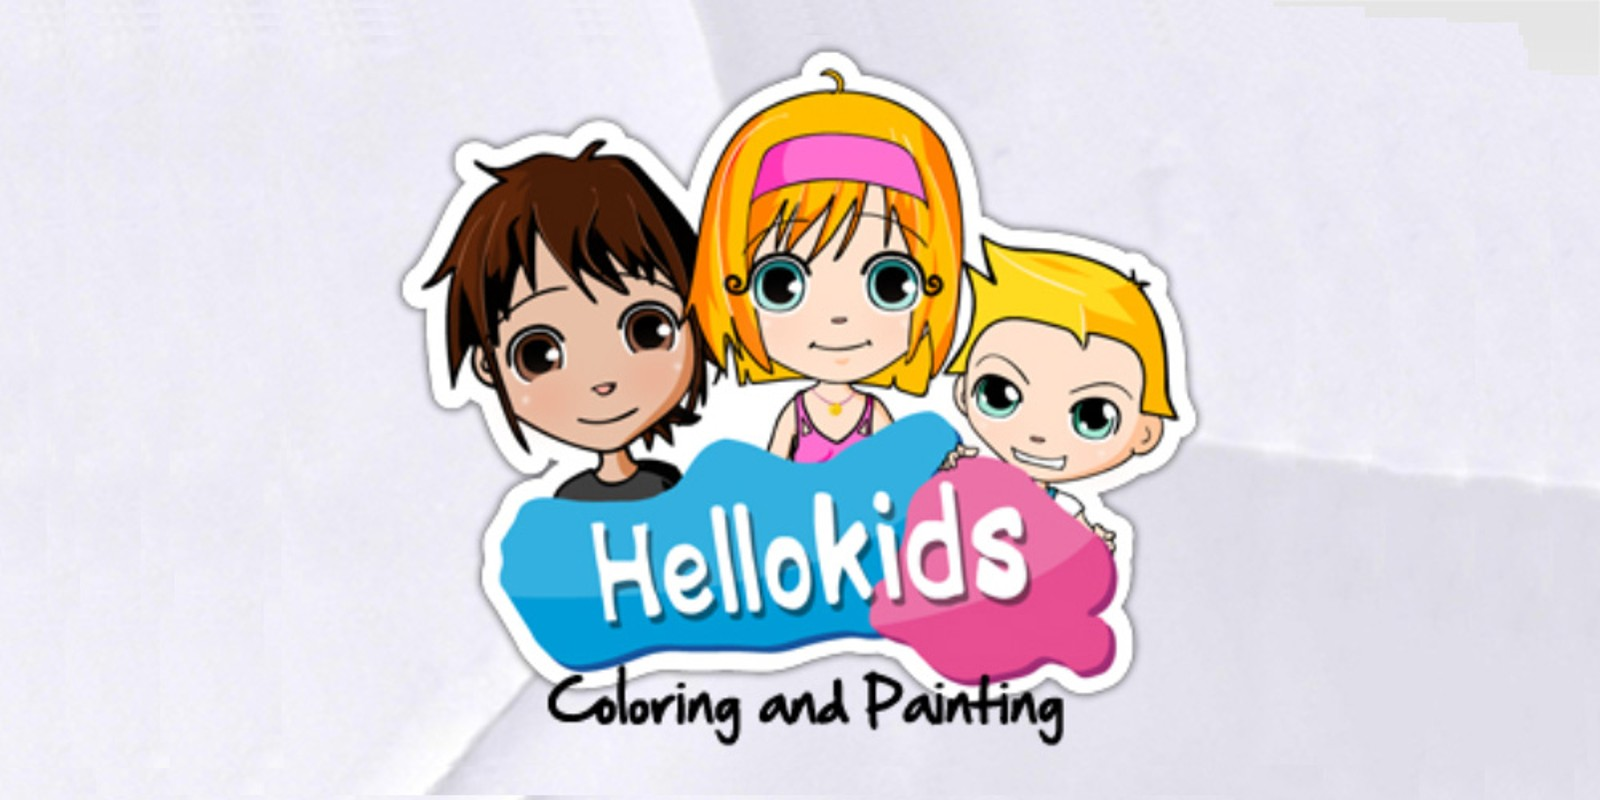 Hellokids Vol 1 Coloring And Painting Nintendo